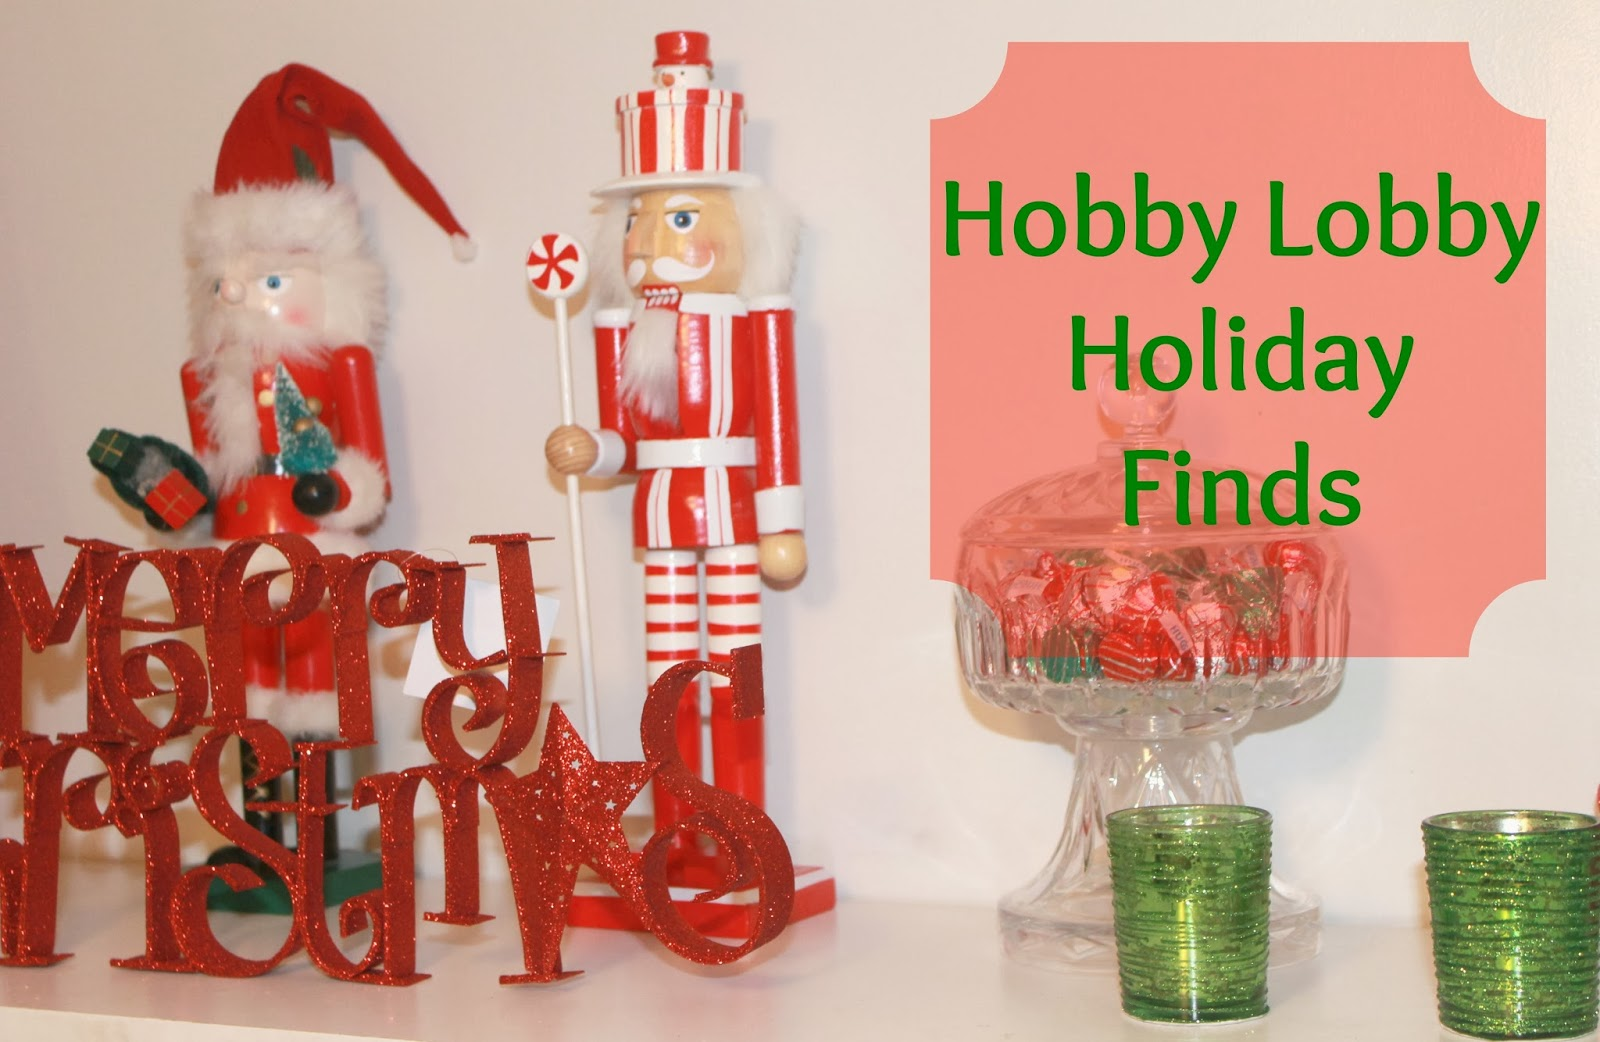 hobby lobby holiday shopping haul christmas decorations sale - Hobby Lobby Christmas Decorations Sale